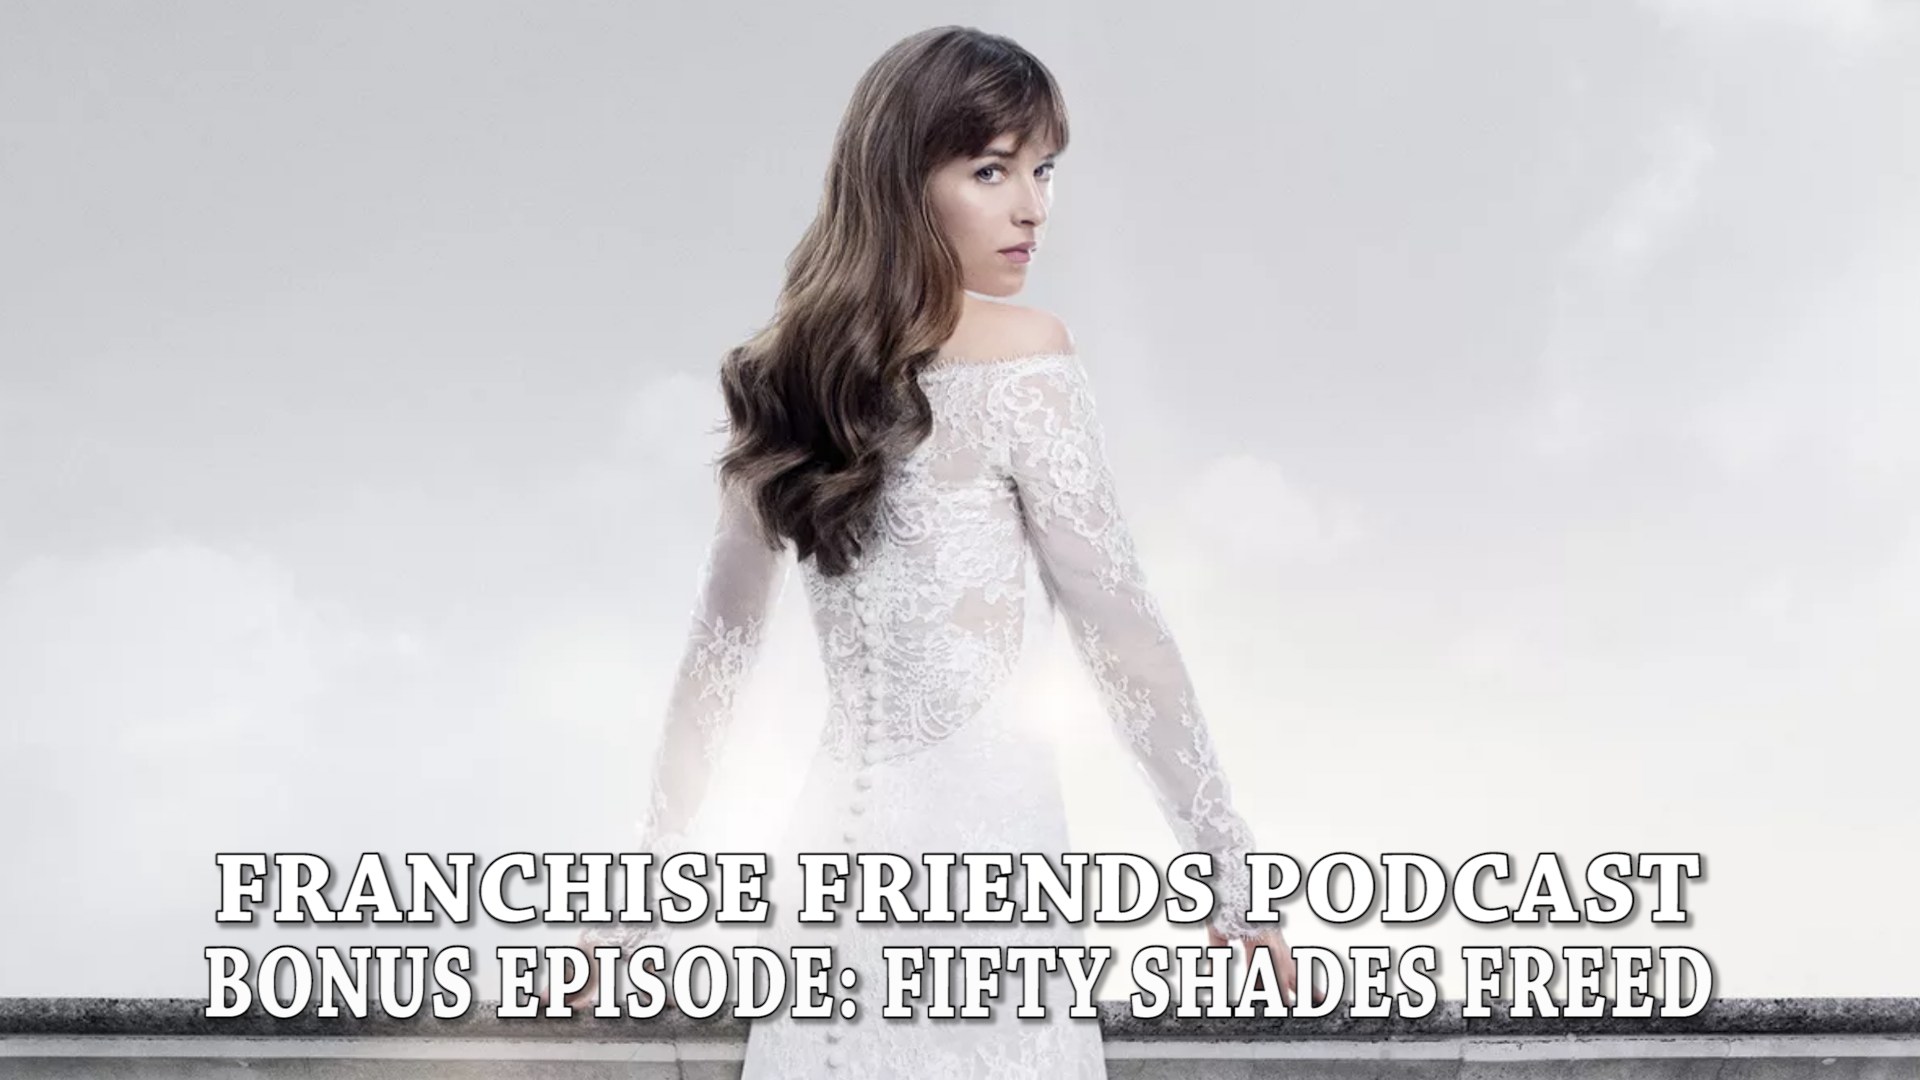 fifty shades freed franchise friends podcast